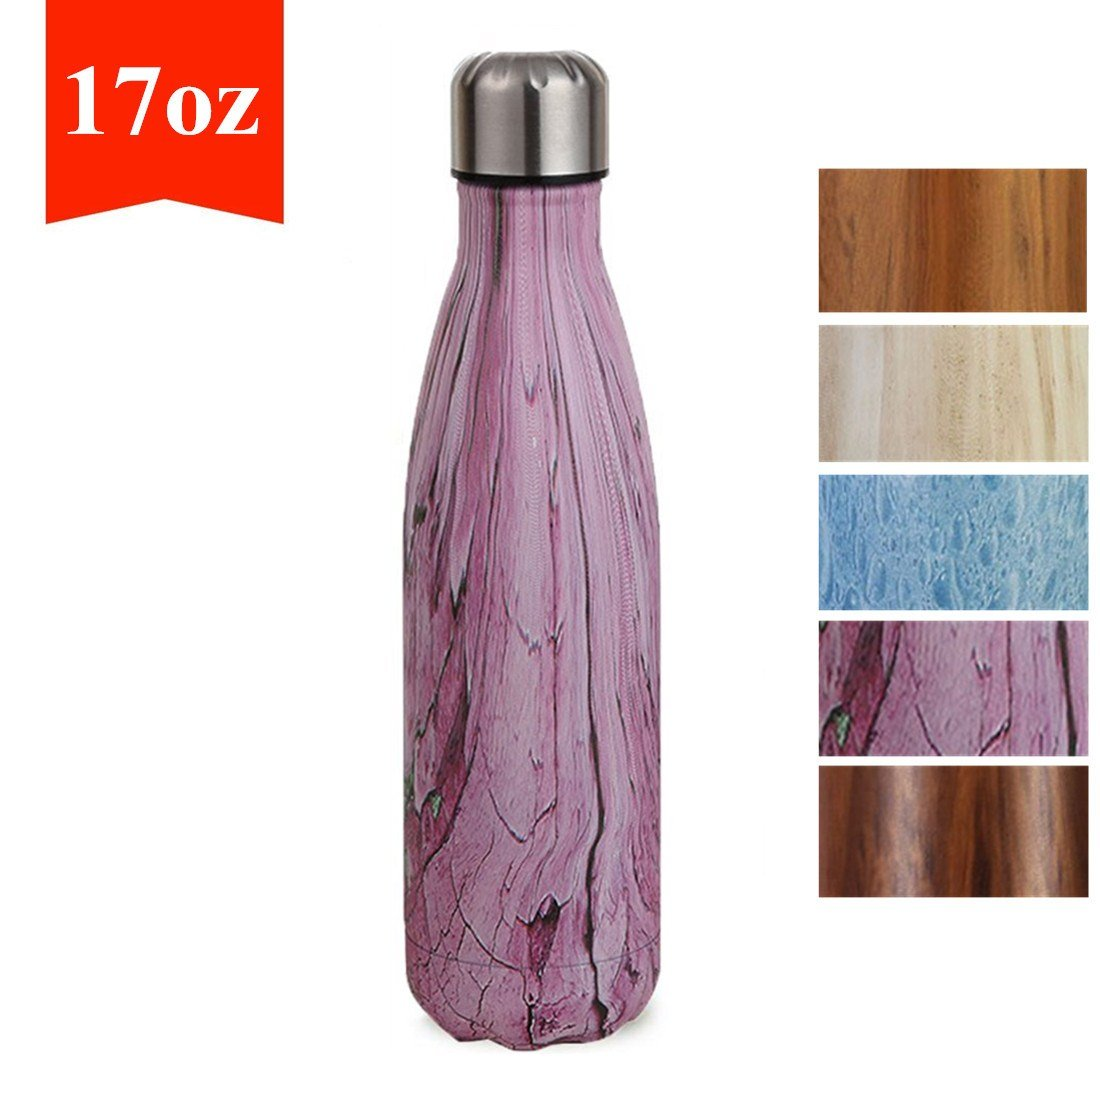 XMX 17oz Vacuum Insulated Water Bottle Double Wall Stainless Steel Leakproof Bottle Outdoor Sports Camping Hiking Cycling Light Purple Wood